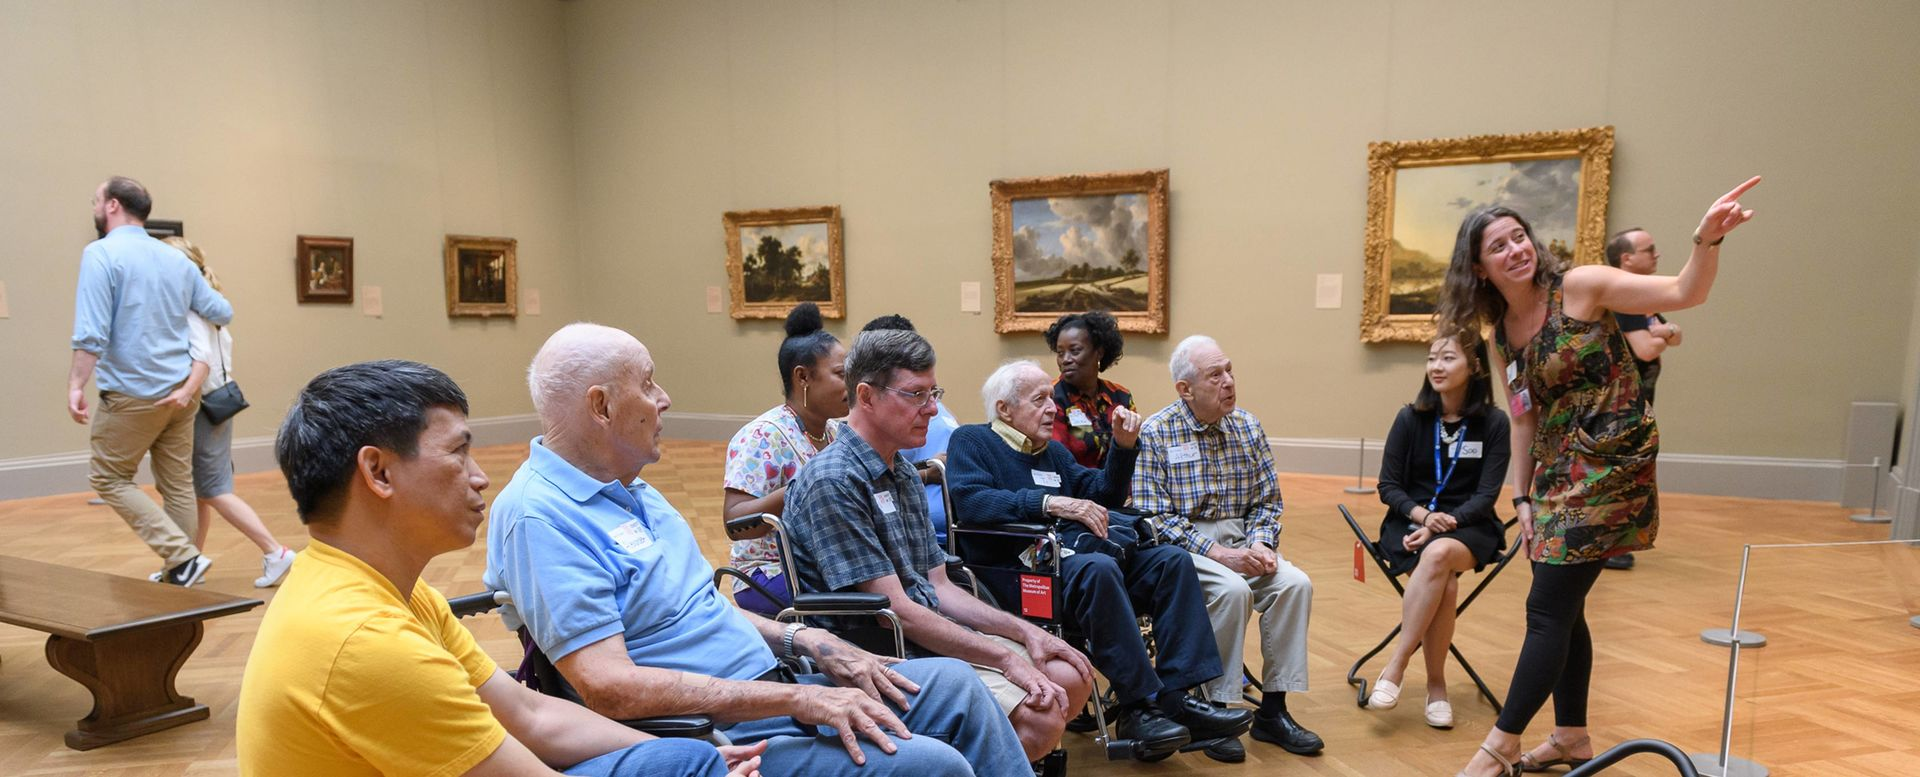 A group sitting in a gallery listen to a woman speak about an artwork.